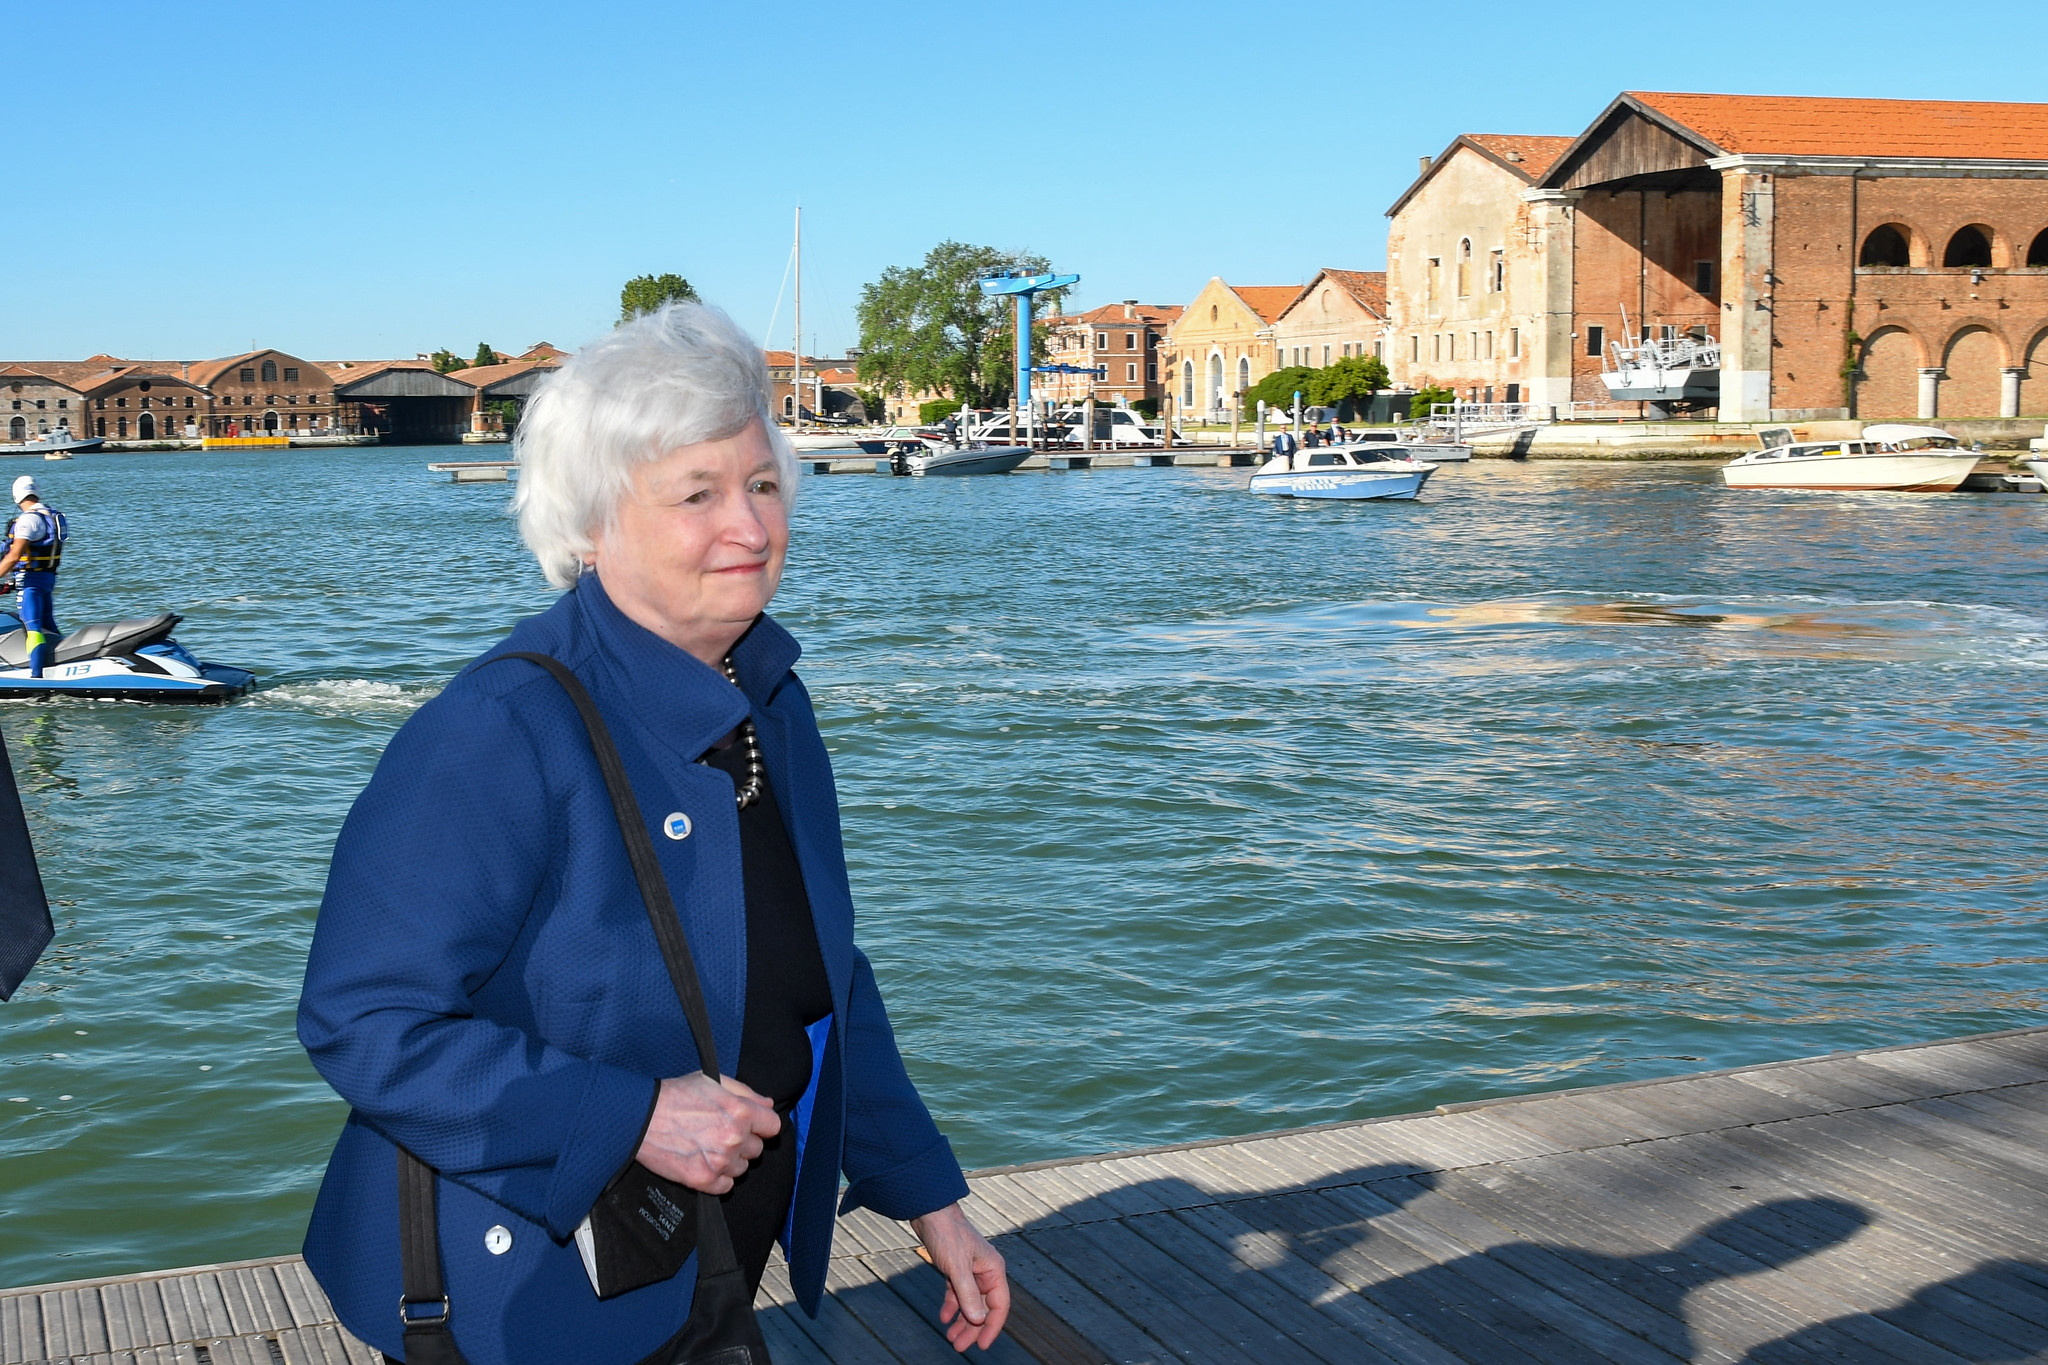 U.S. Secretary of the Treasury Janet Yellen arrives to attend the G20 finance ministers and central bank governors' meeting in Venice, Italy, July 9, 2021. G20 Italy/Handout via REUTERS